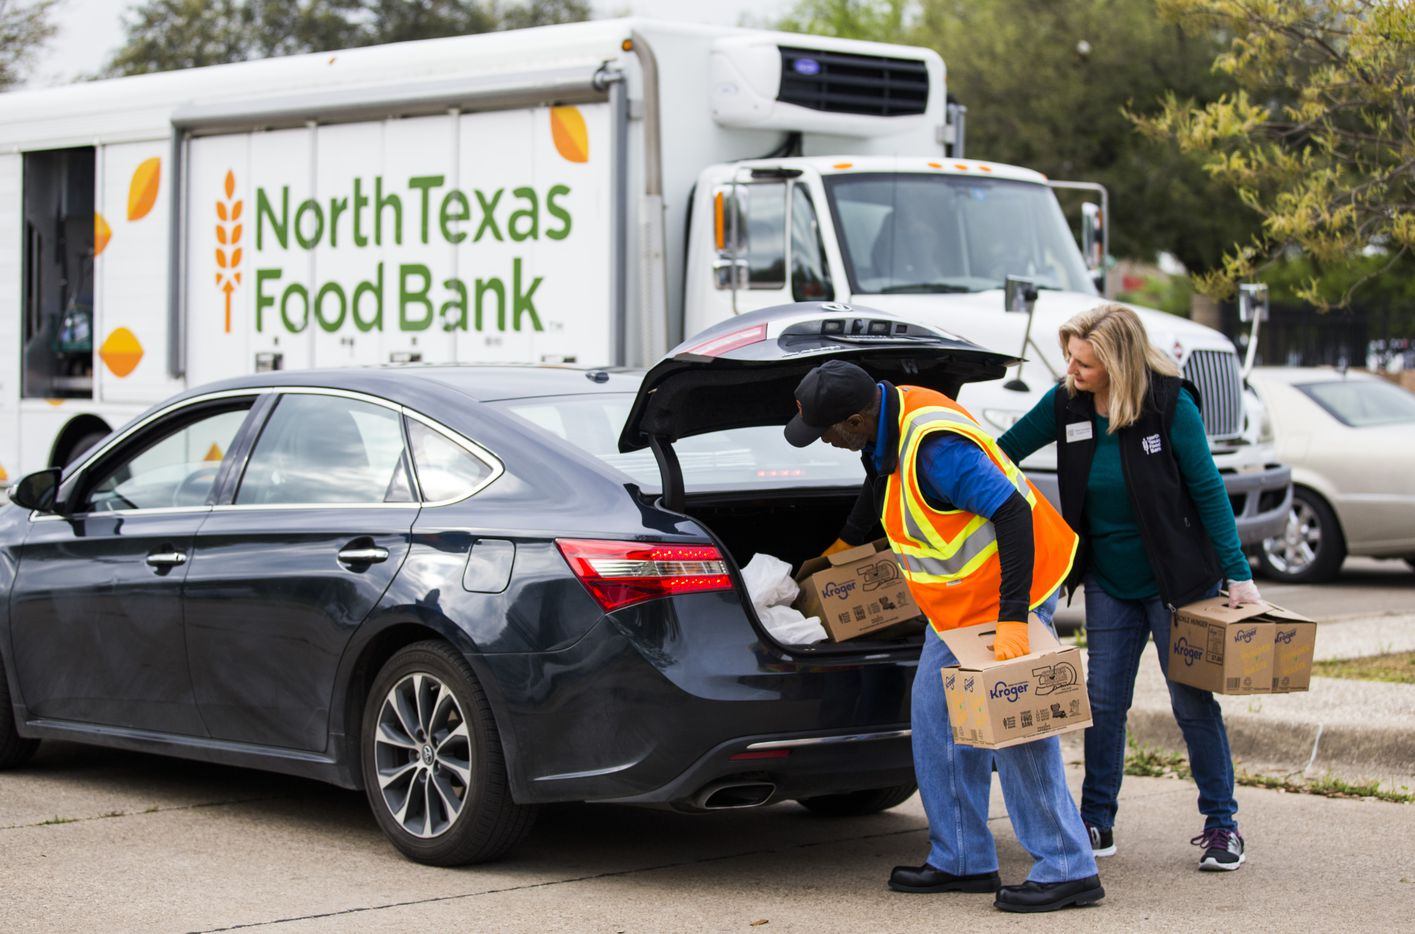 Volunteer Anthony Devers and North Texas Food Bank president and CEO Trisha Cunningham place boxes in one of the hundreds of cars lined up for food distribution.